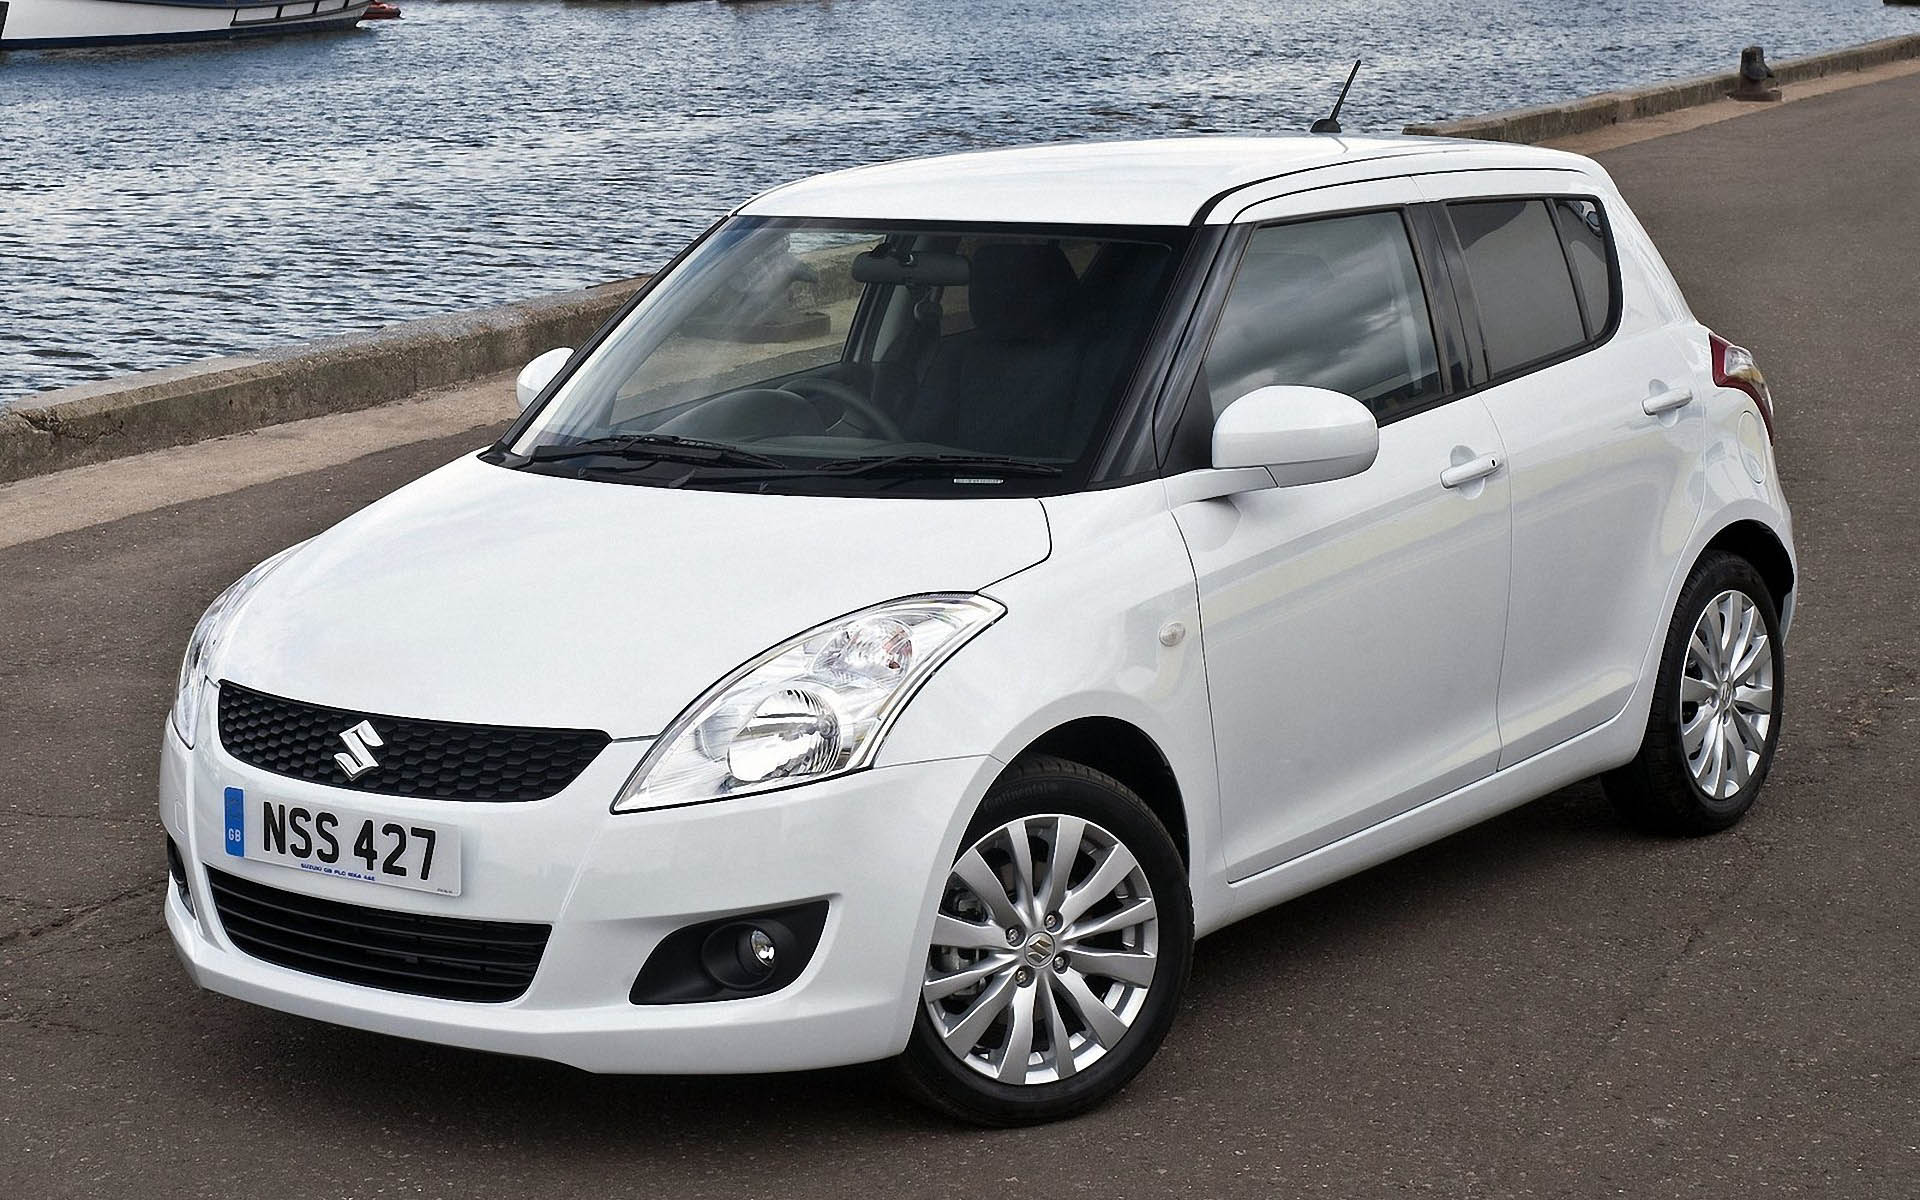 SUZUKI SWIFT white